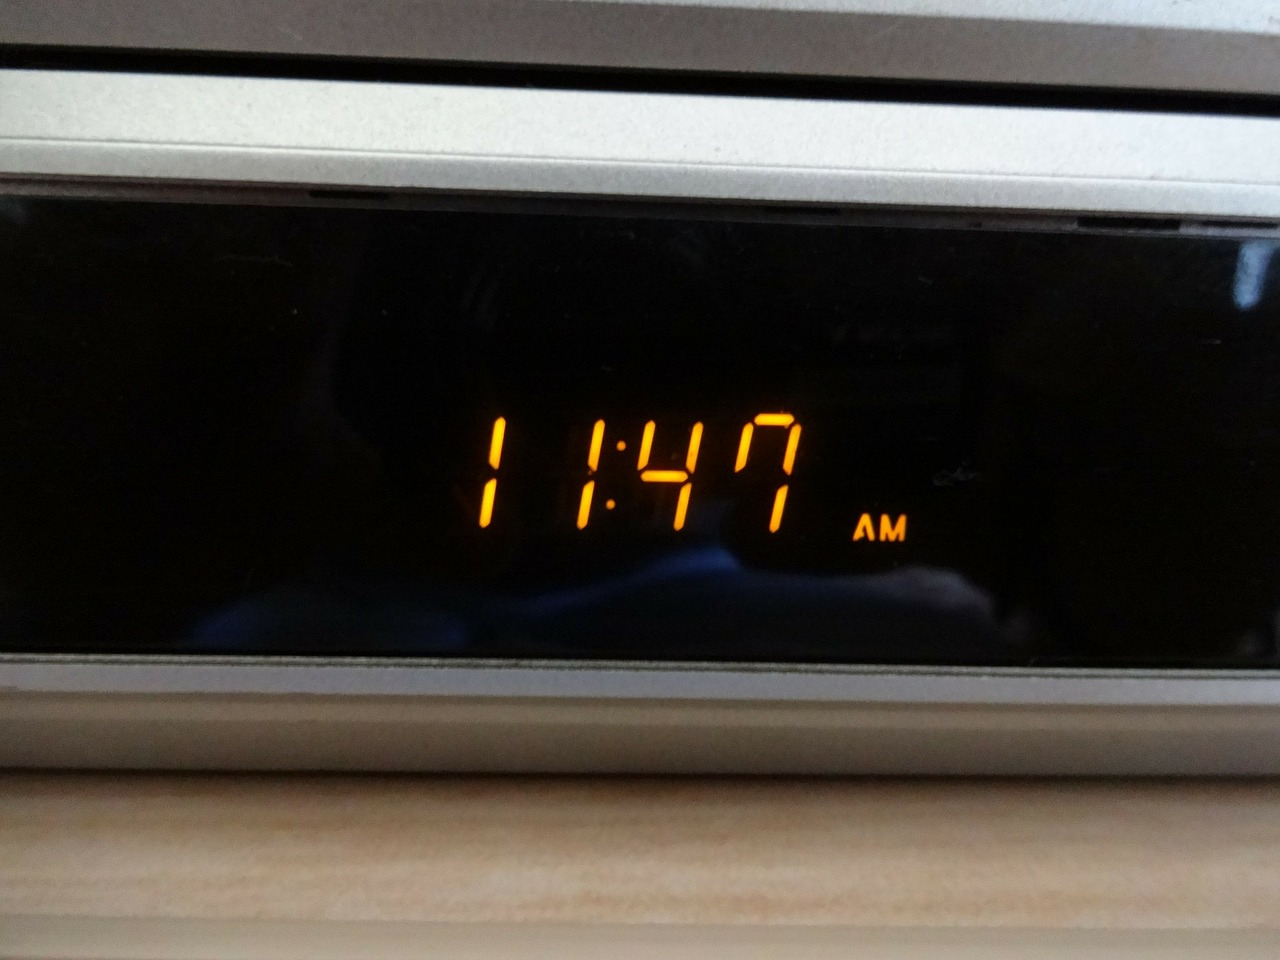 Digital clock (all in only one document)